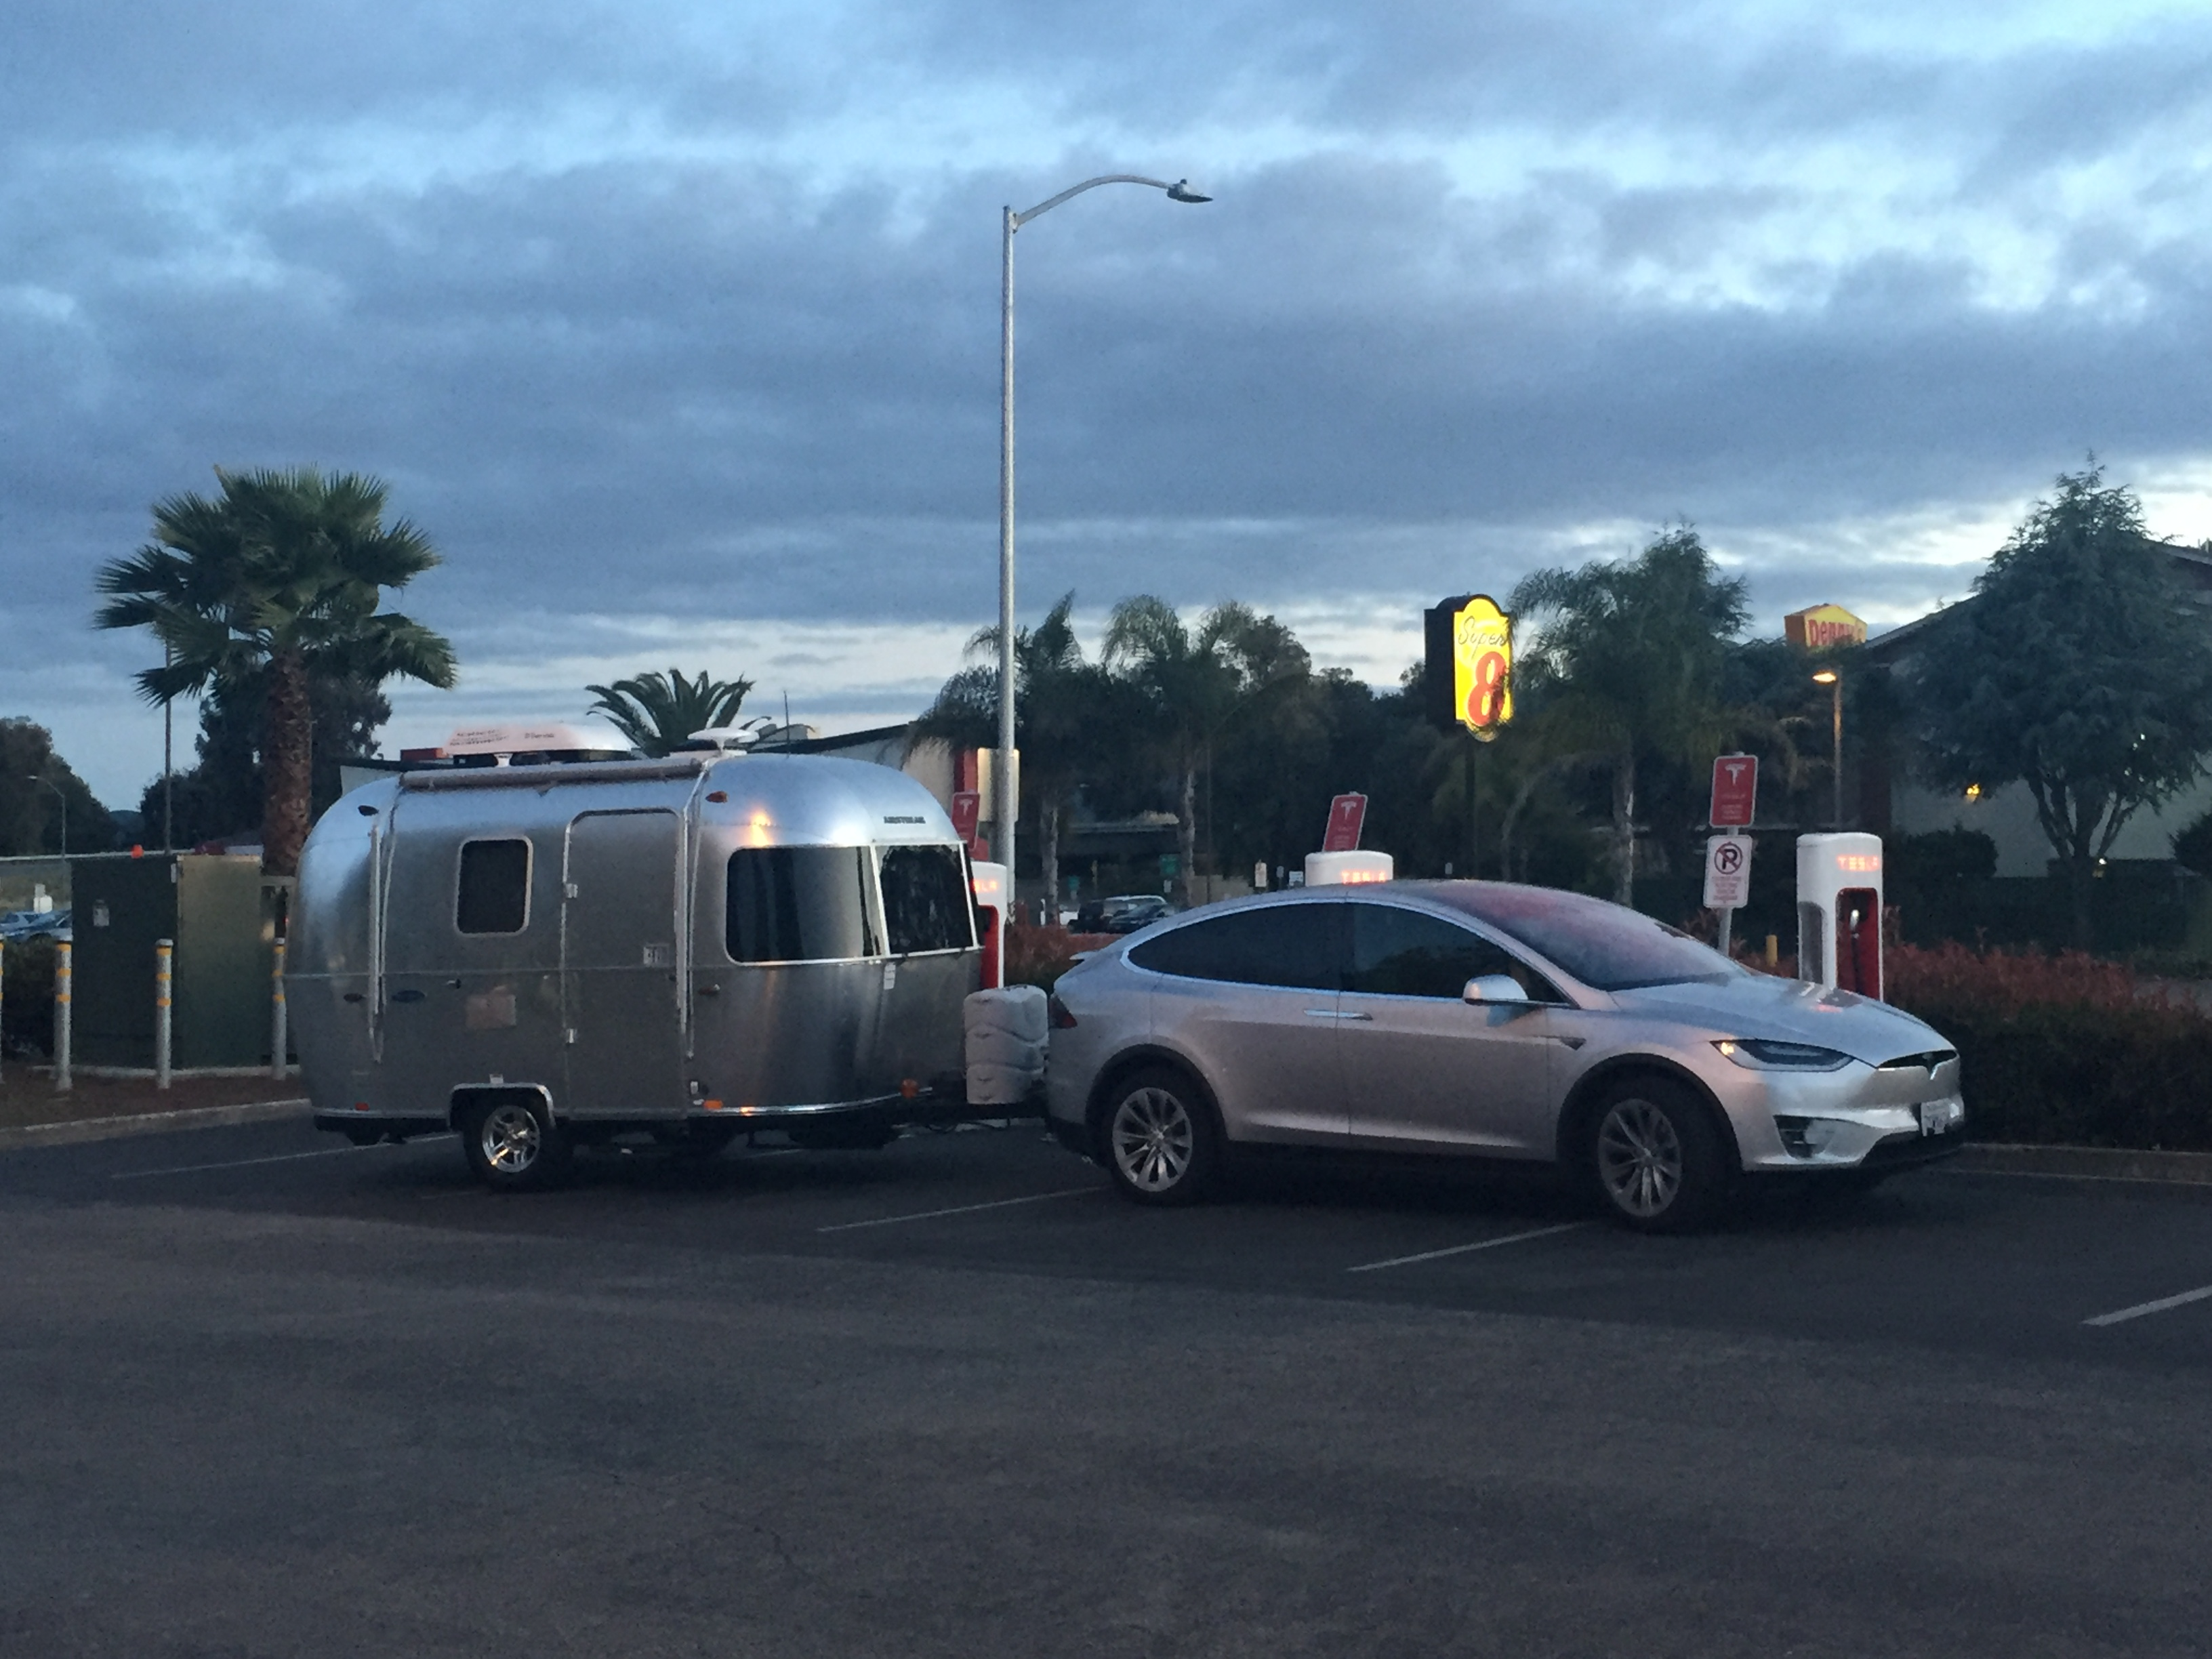 Tesla Charging Station Cost >> Tesla Model X towing a trailer caught violating charging station etiquette   The Long Tail Pipe